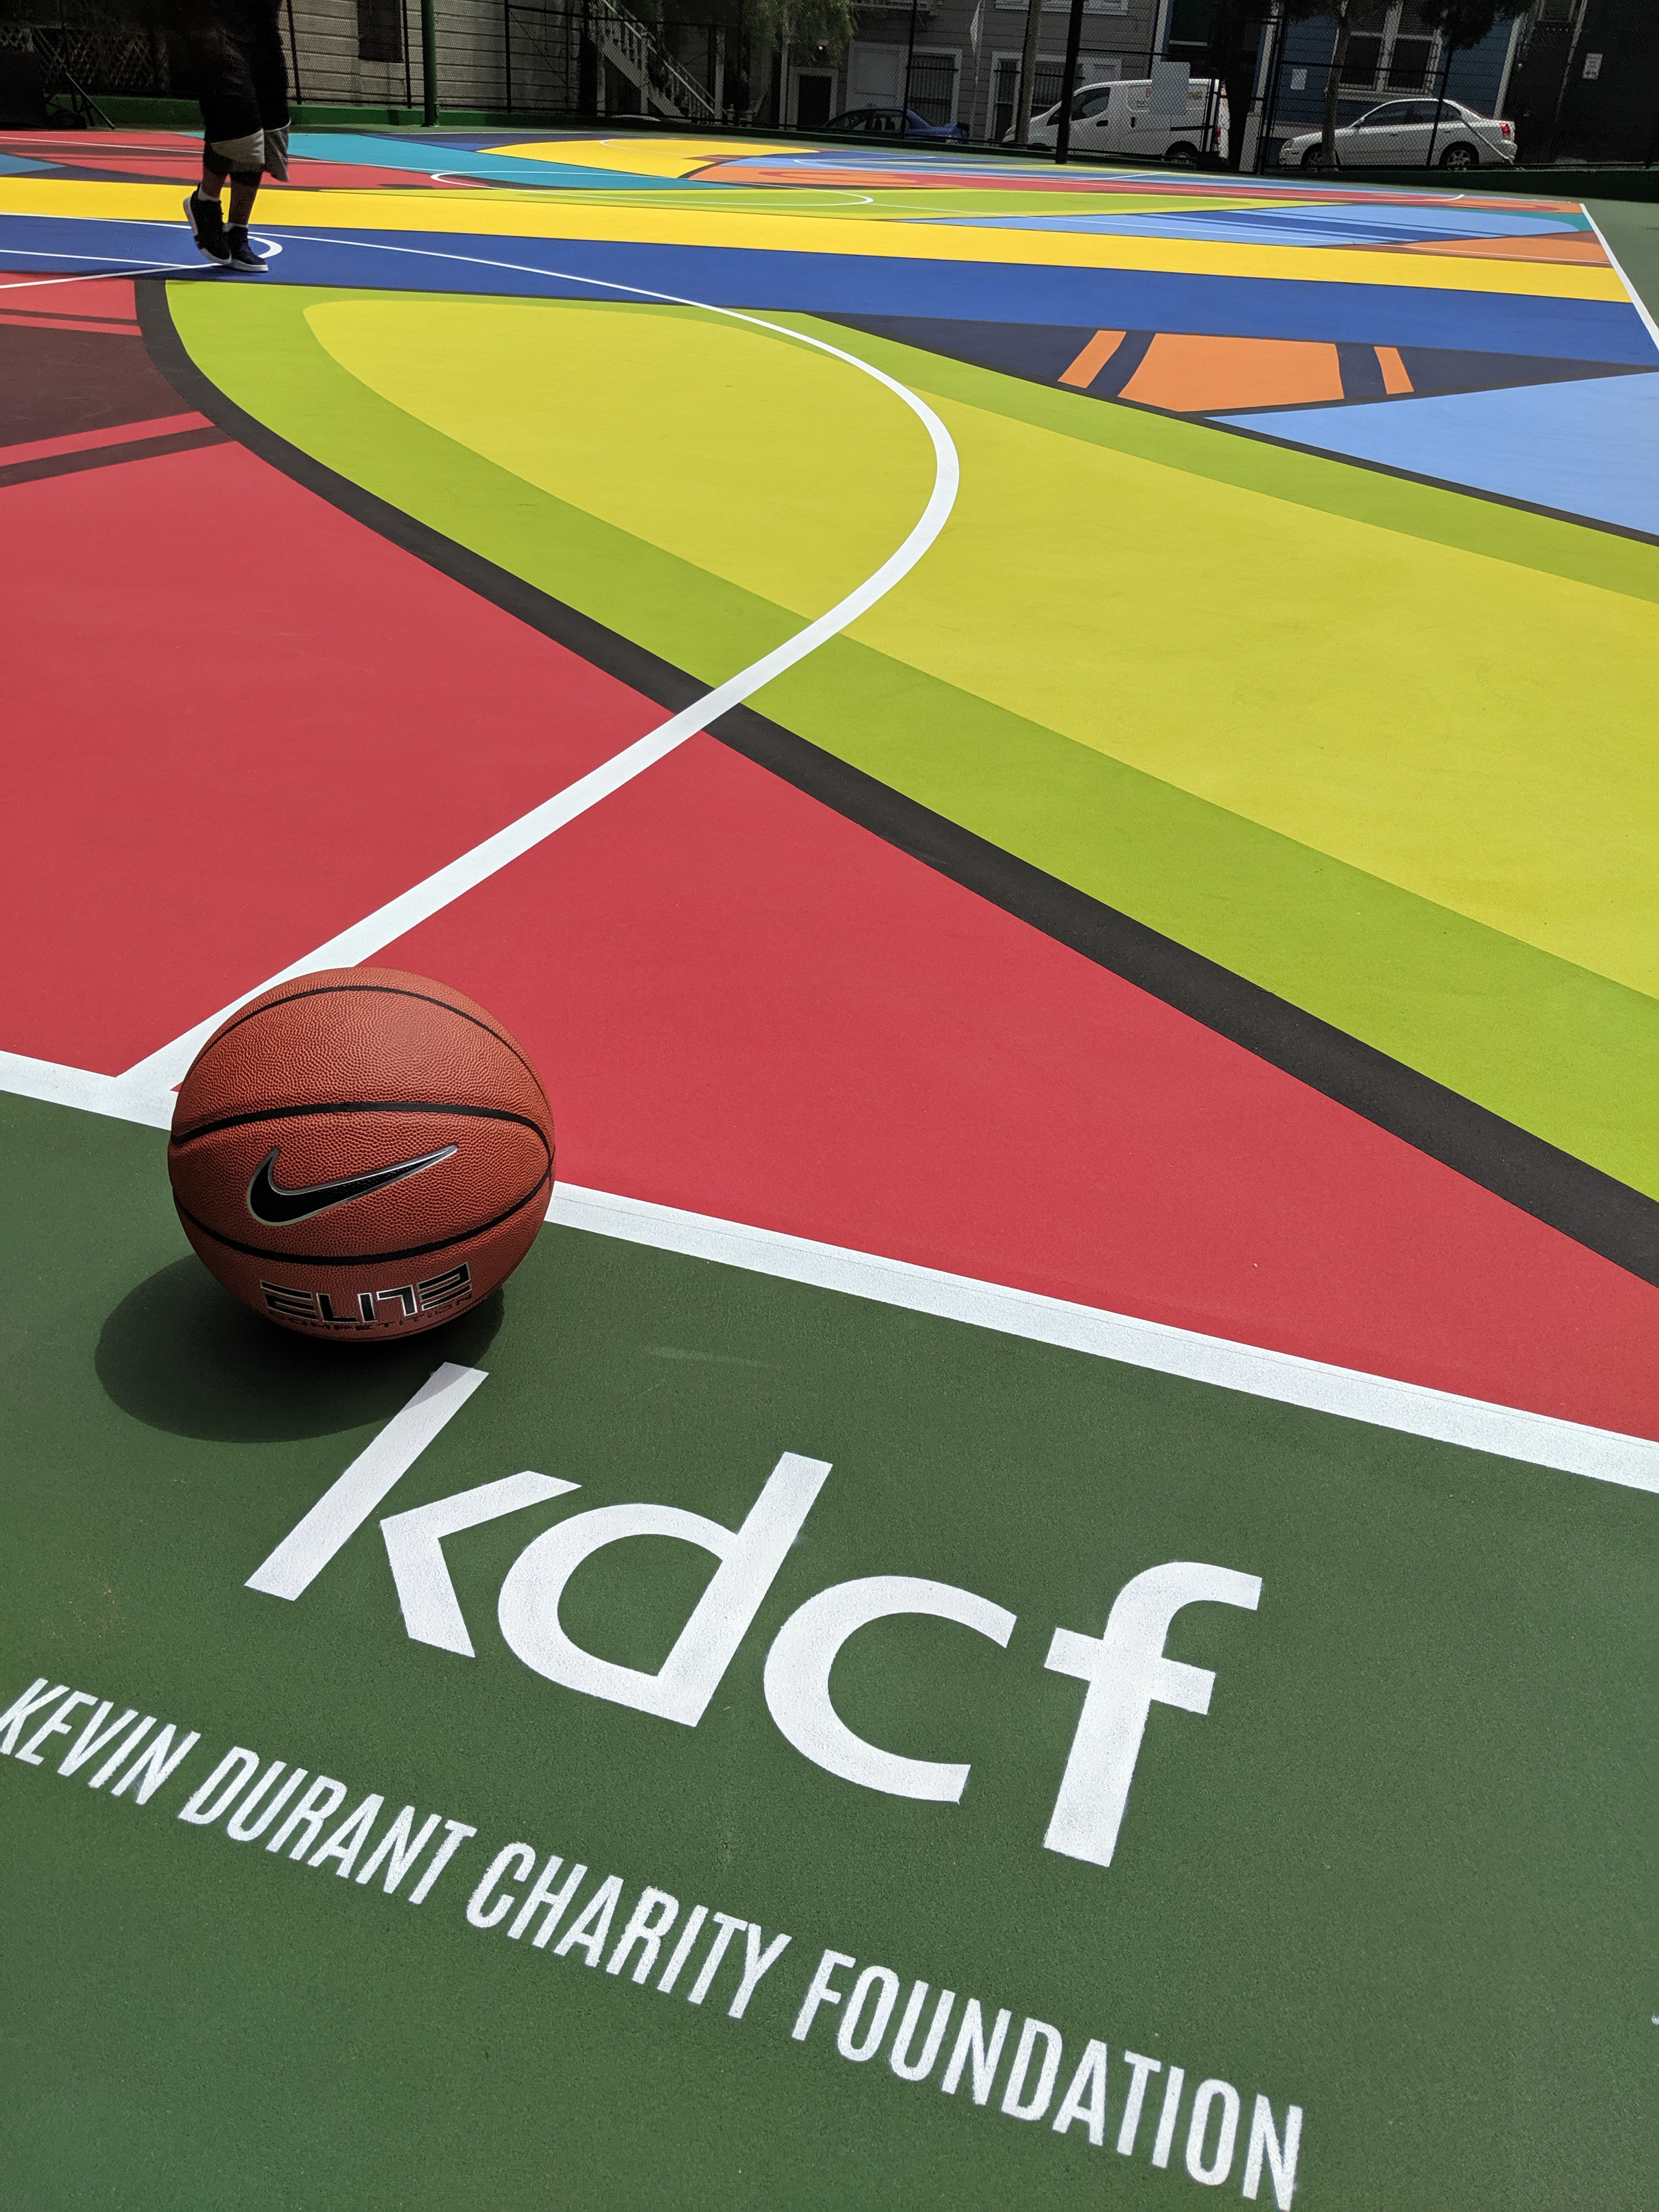 The court made possible by the Kevin Durant Charity Foundation